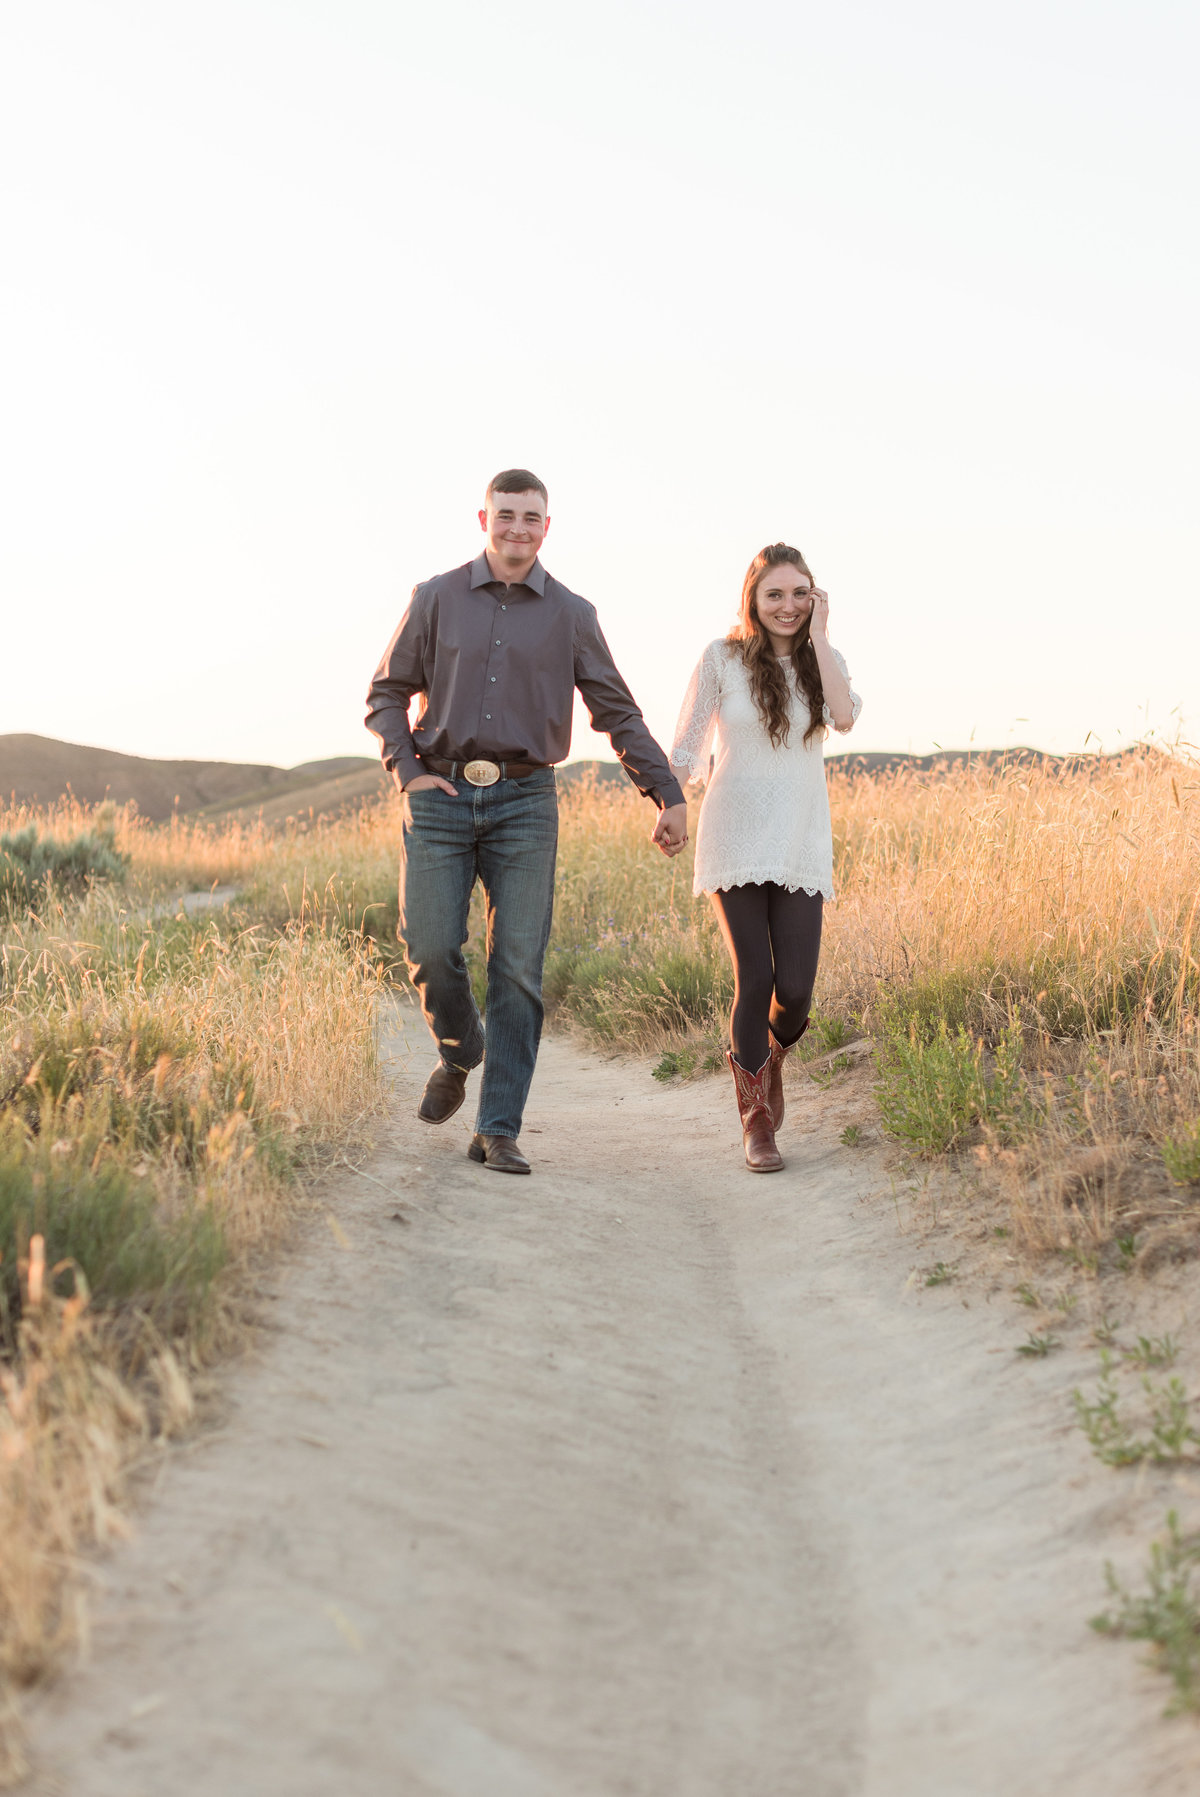 Spring Boise Foothills Engagement Shoot17